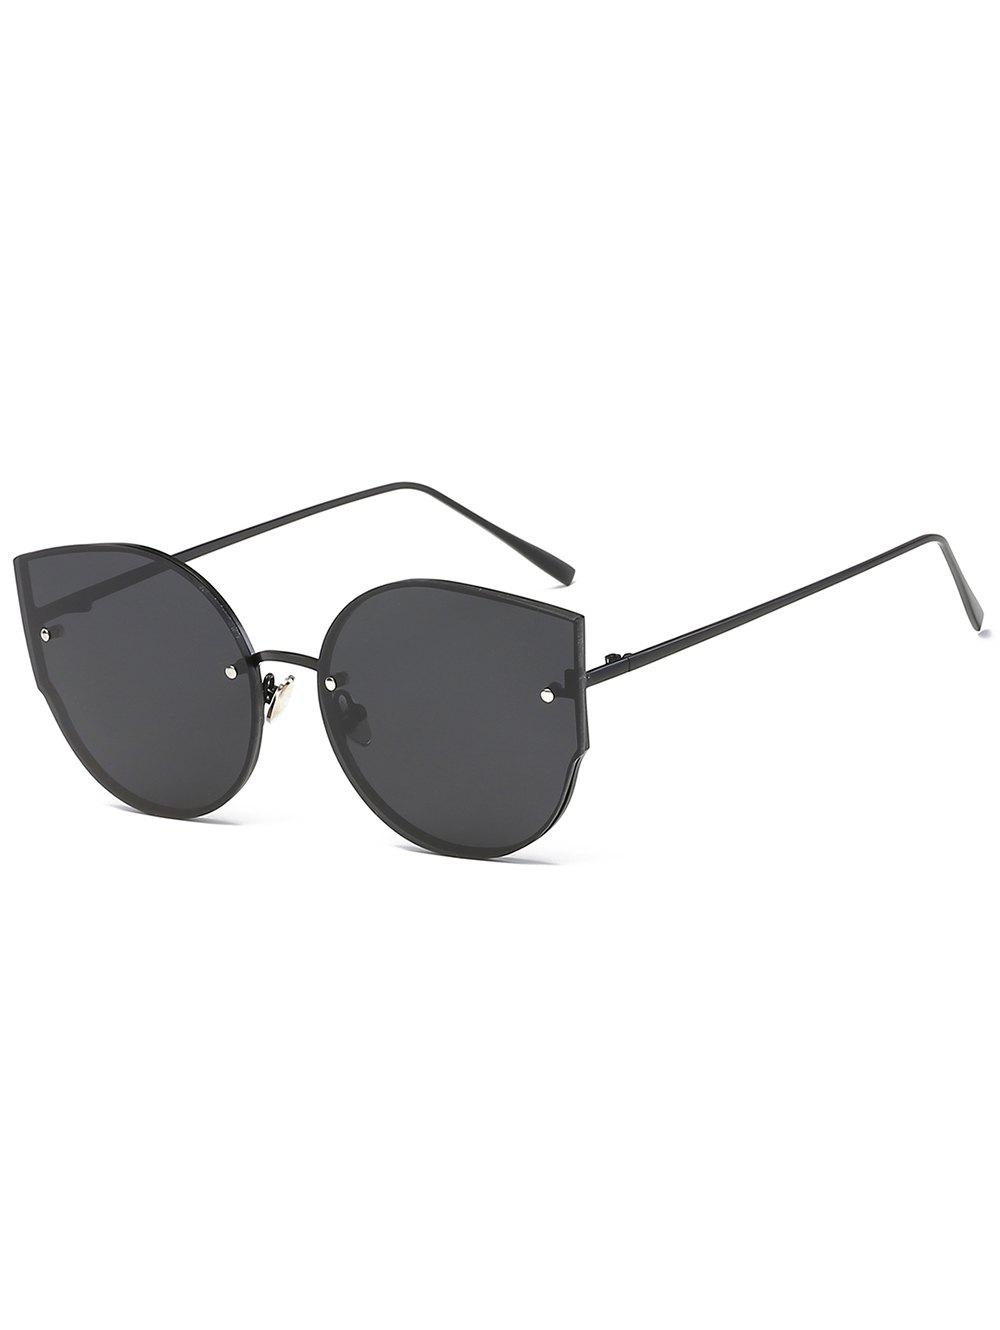 Buy Lightweight Flat Lens Catty Sunglasses